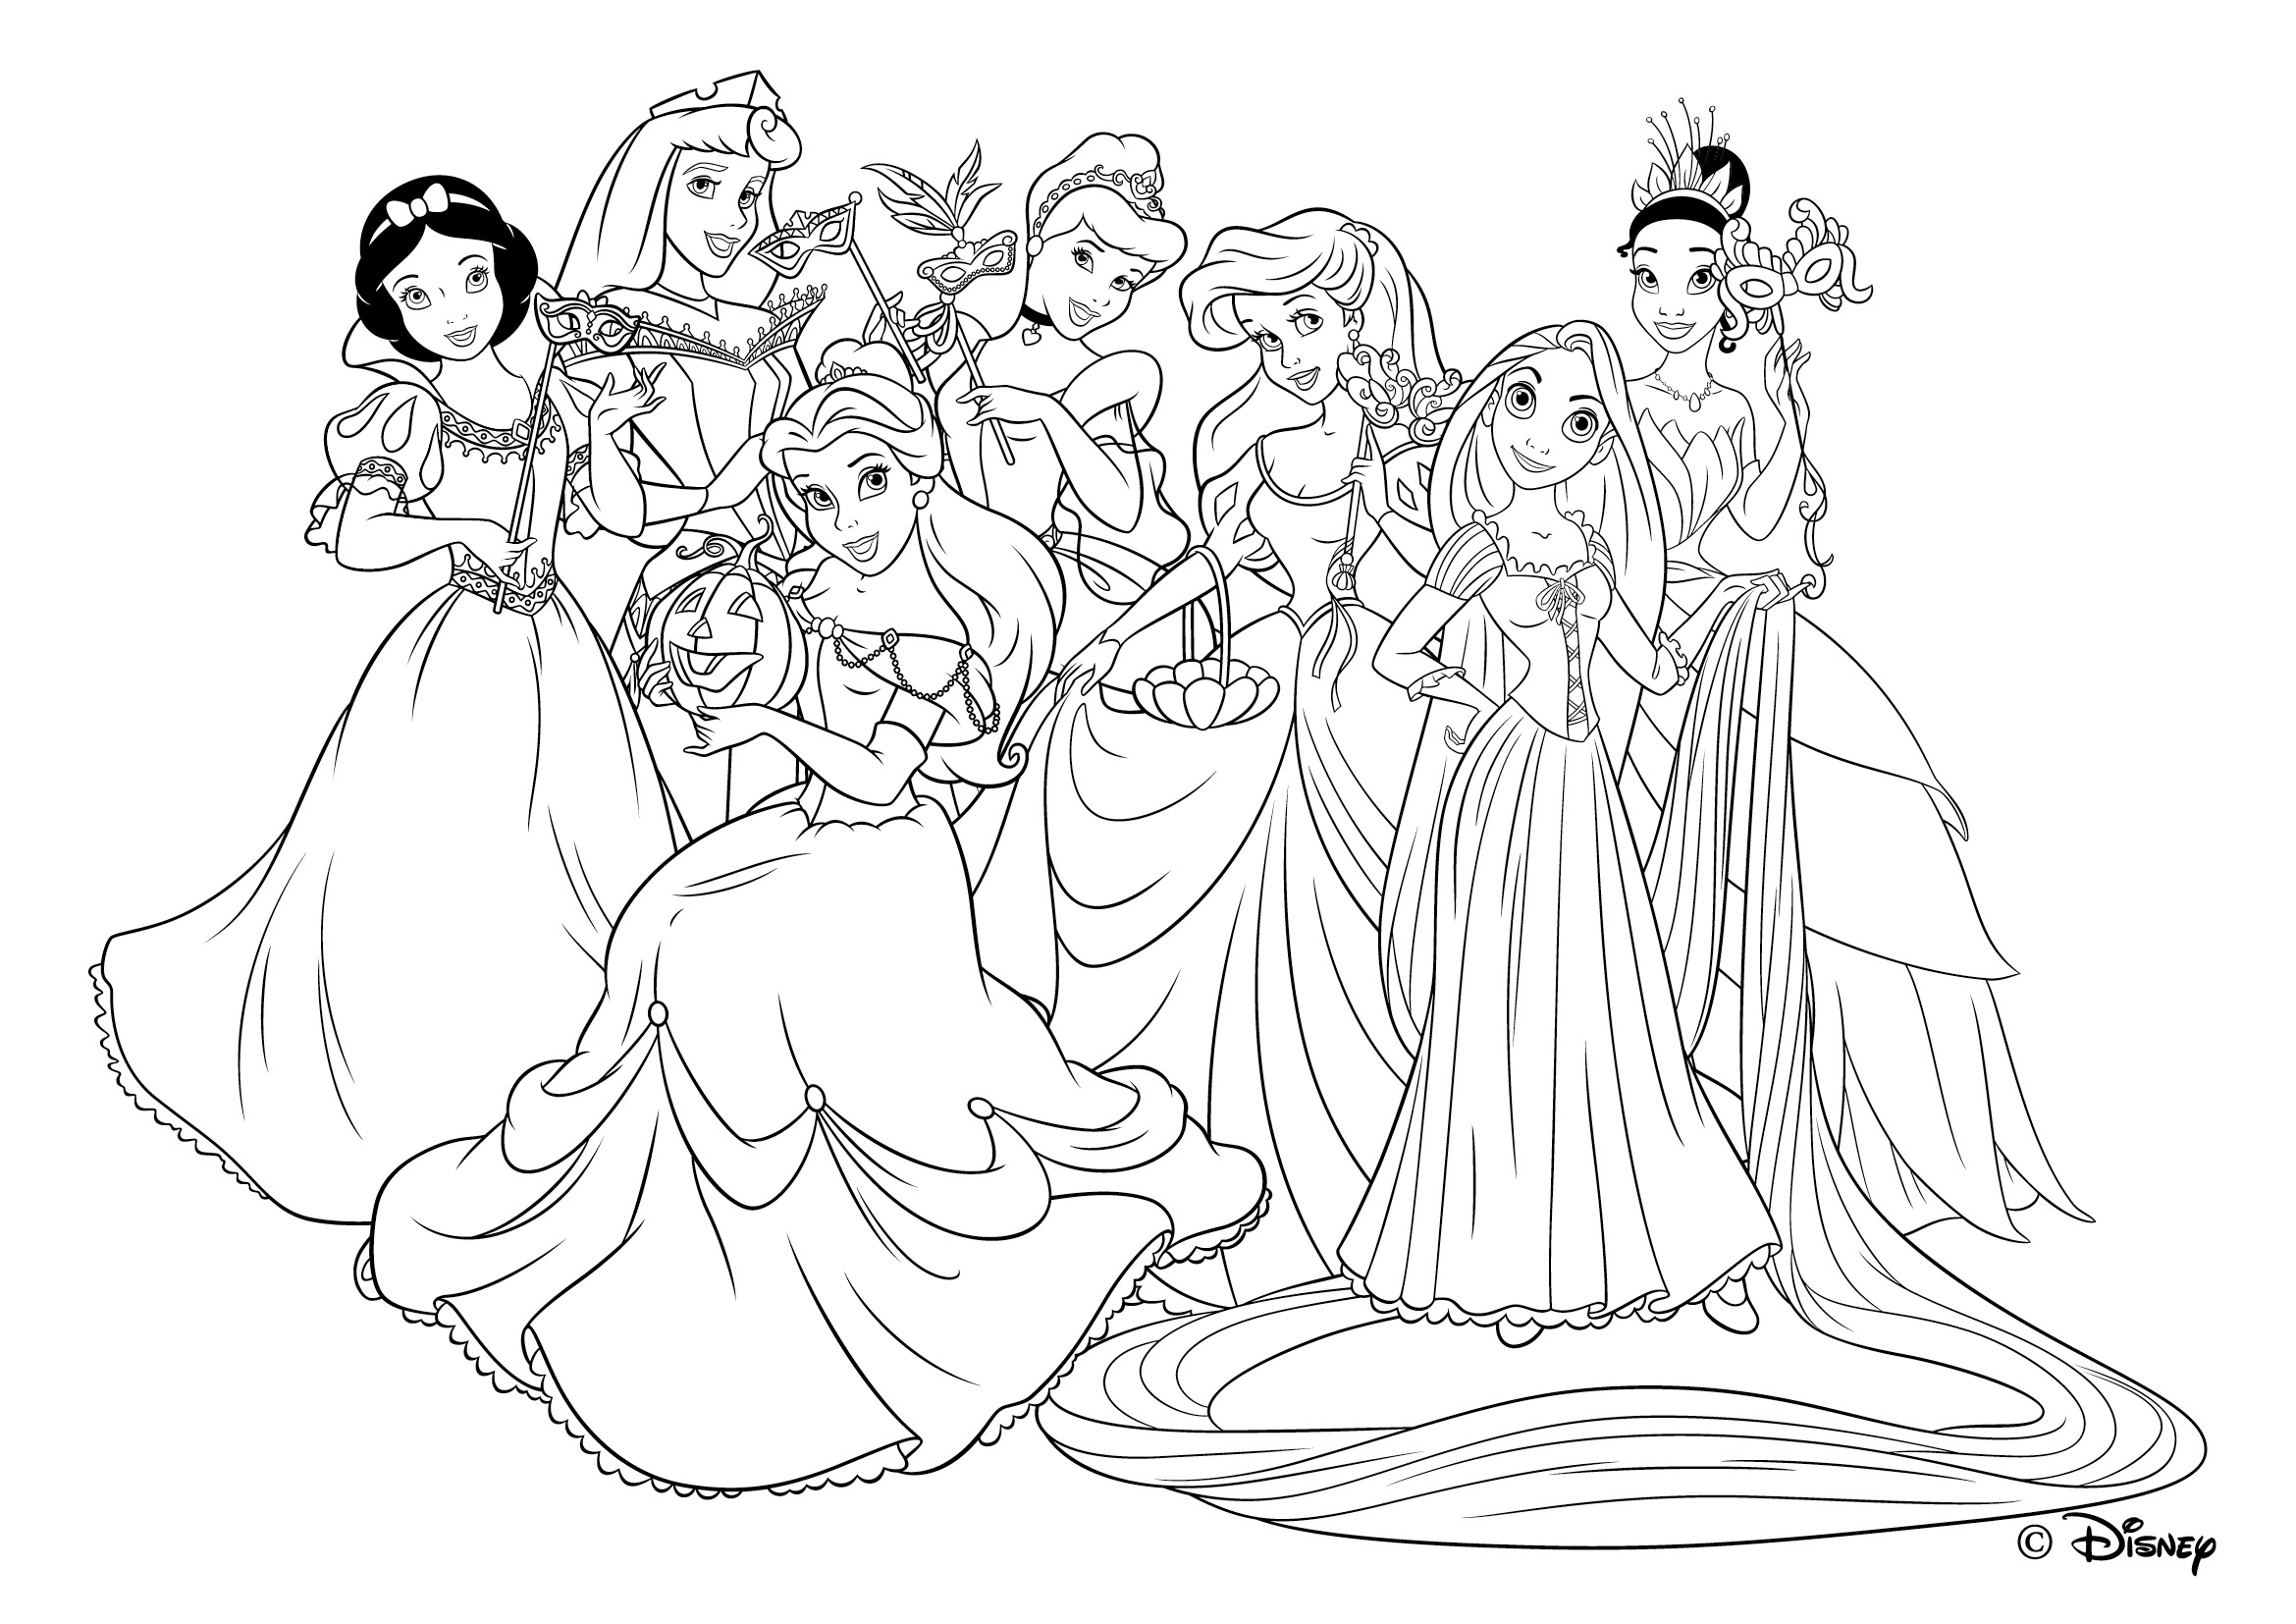 Coloriage204 coloriage princesses disney imprimer - Coloriage princesses disney a imprimer ...